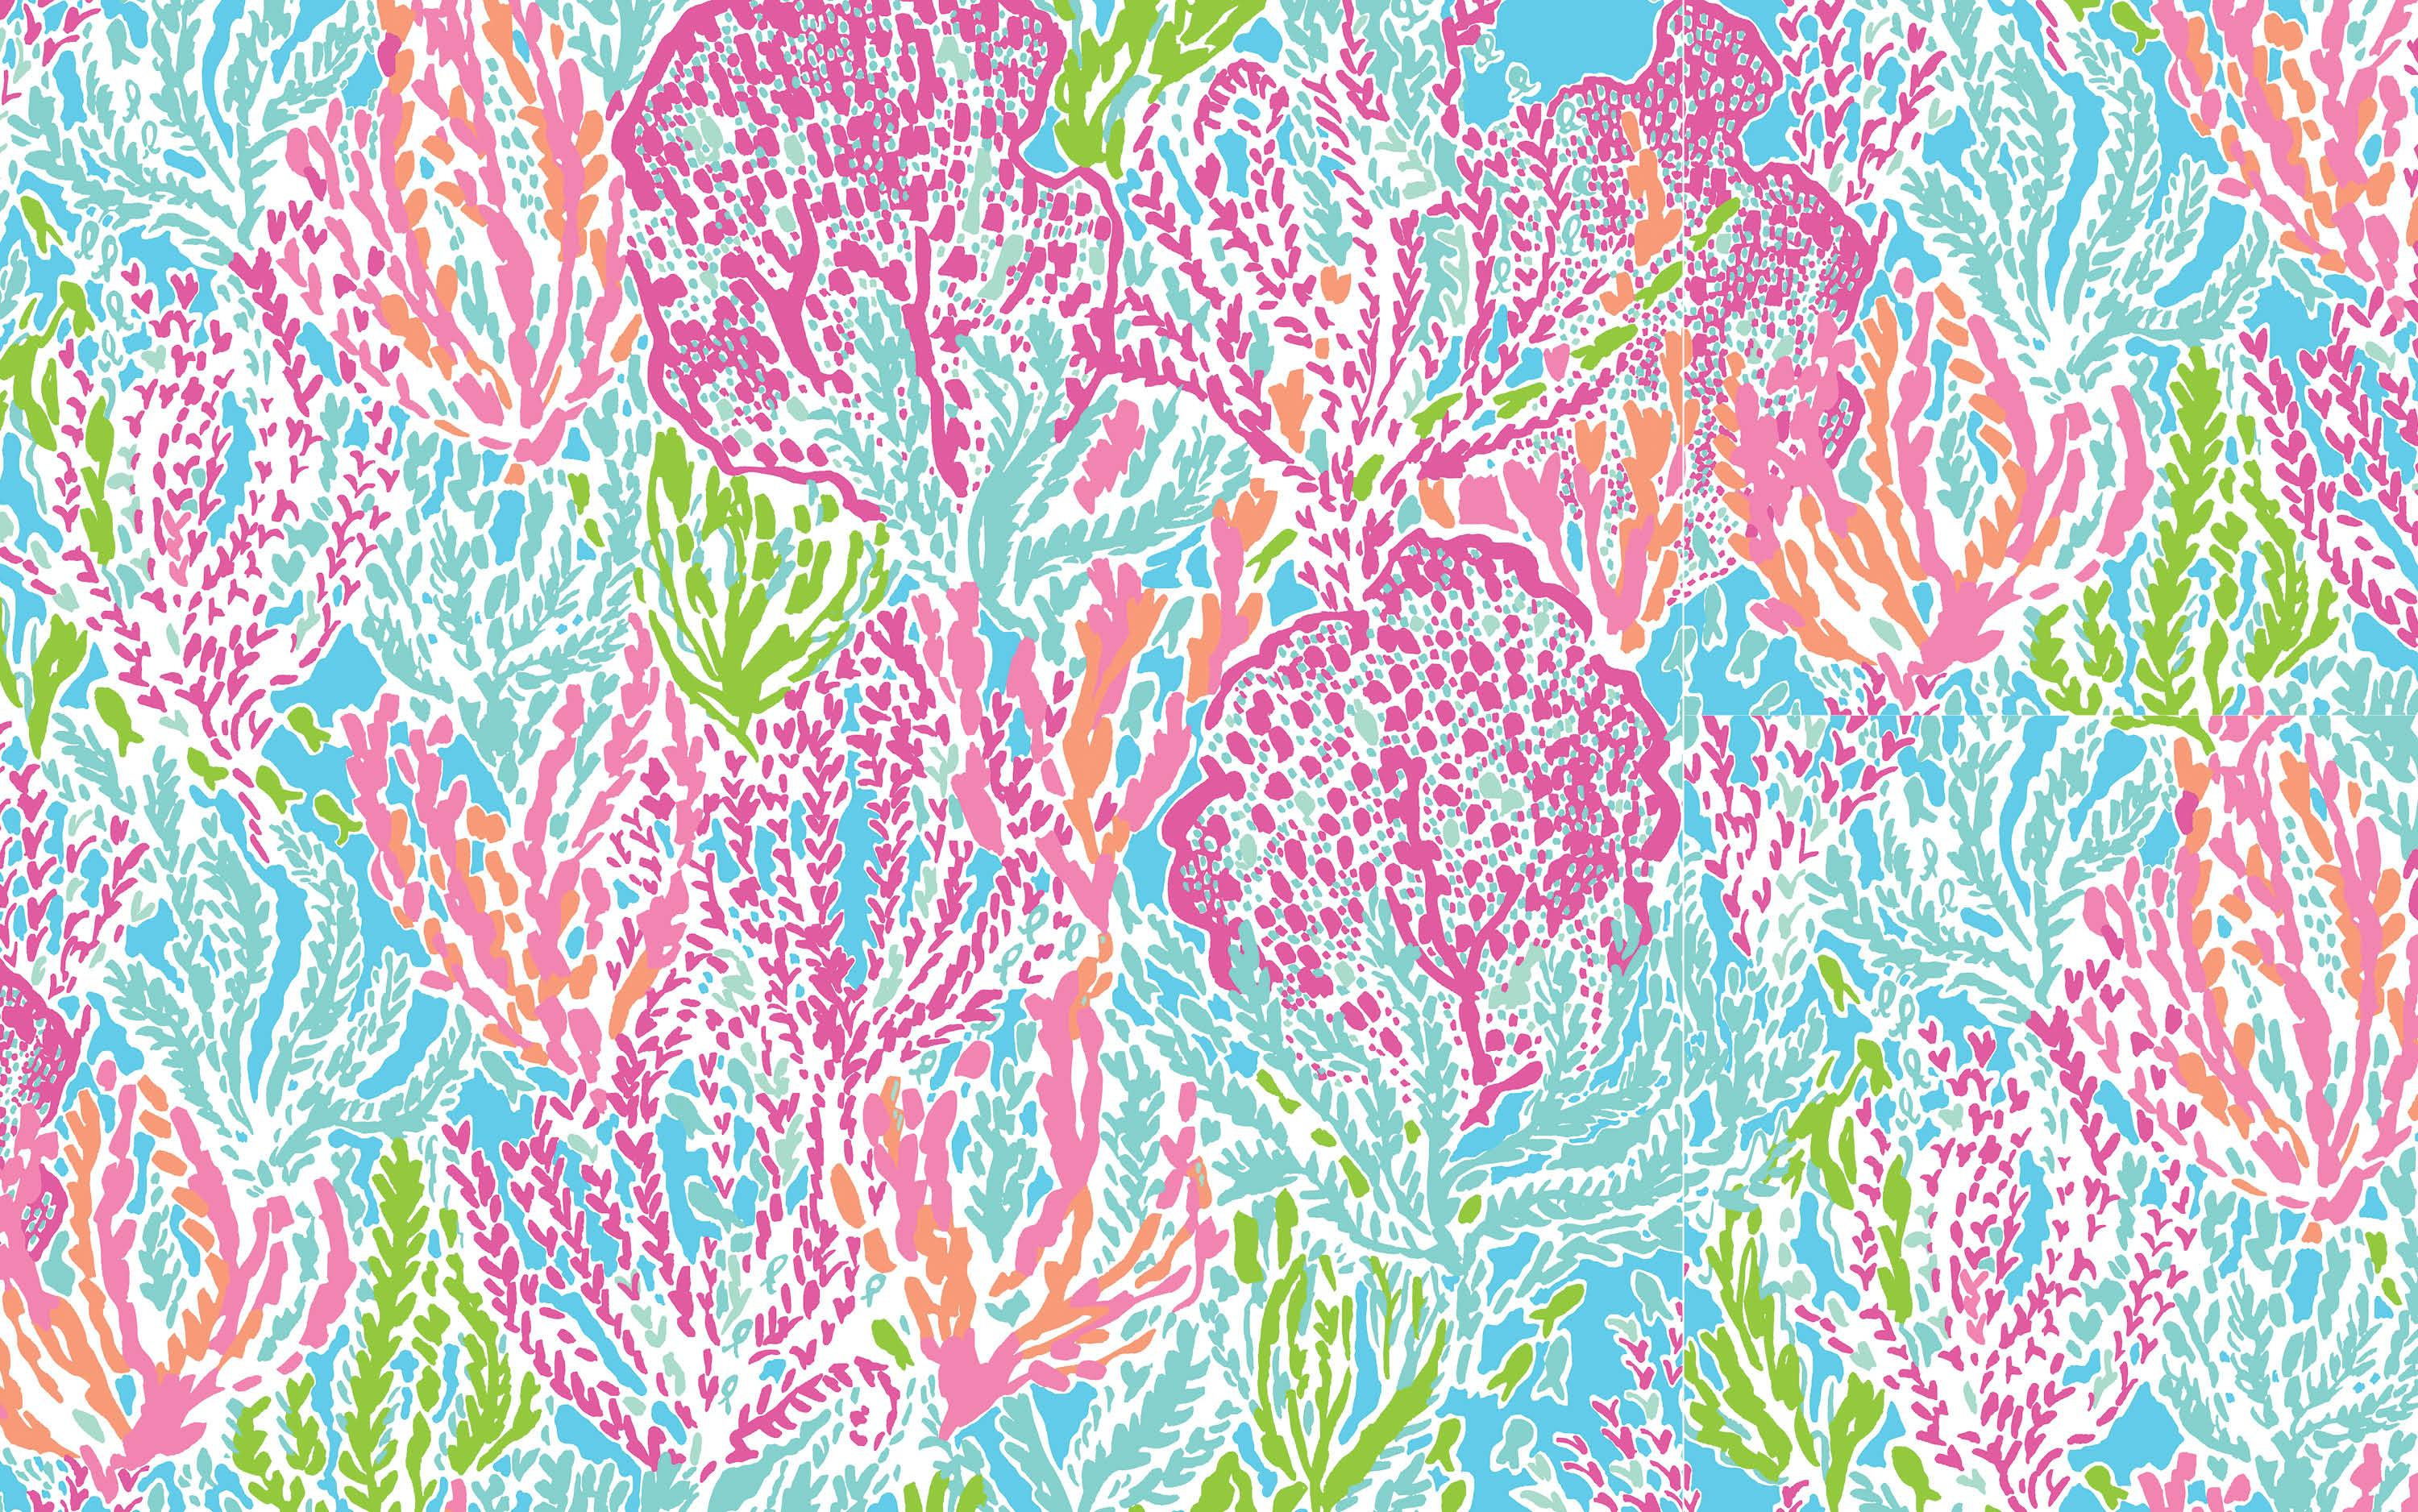 Lilly Pulitzer Ipad Backgrounds Wallpaper Hd